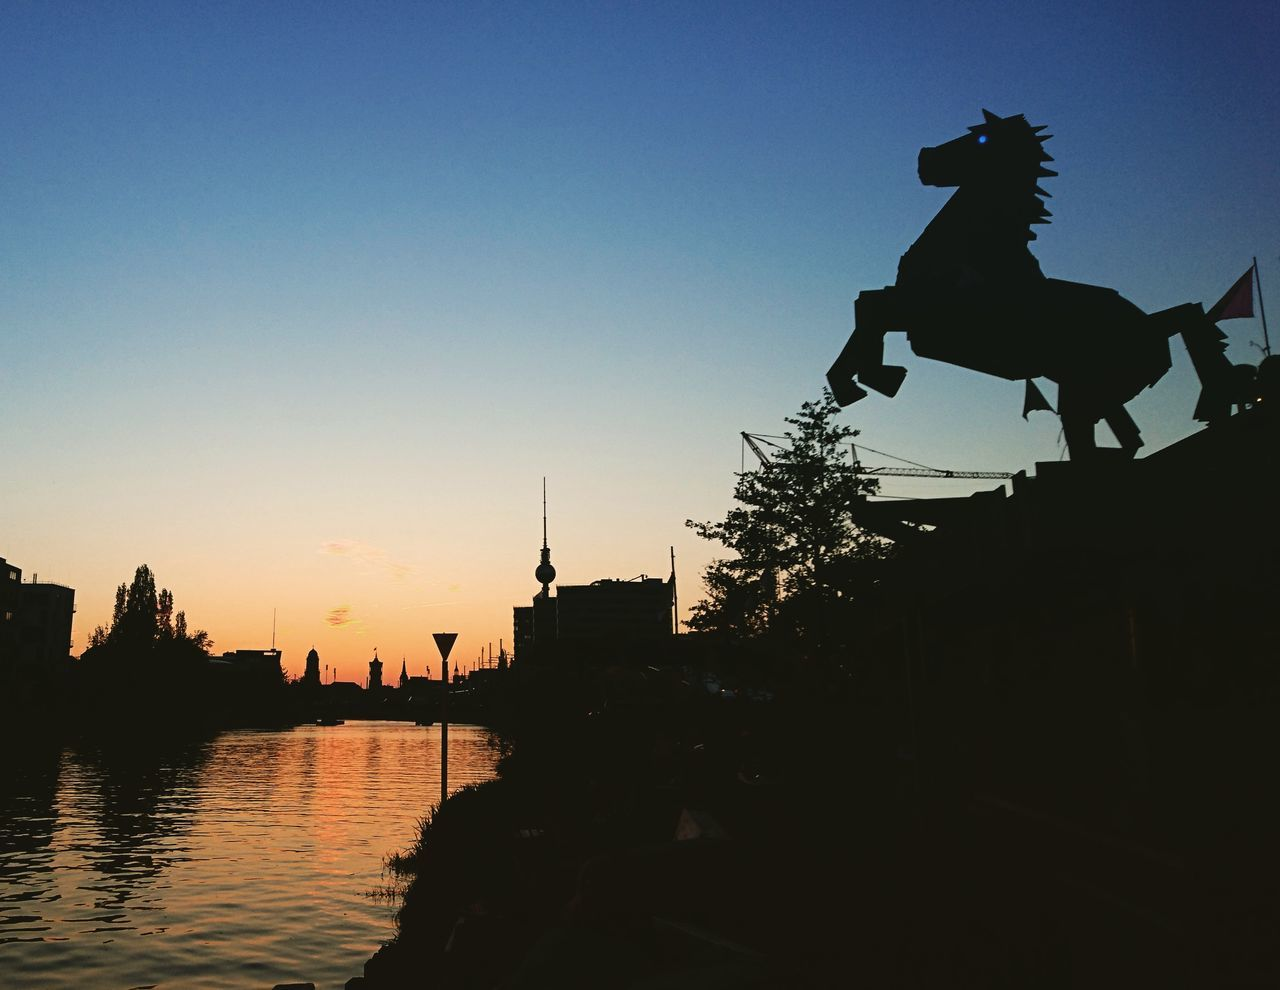 Silhouette Sunset Outdoors Sky Architecture Water Berlin Summer Views Summer Vibes Summer Time  Horse River Side Berlin Style Relaxed Moments Hanging The Great Outdoors - 2017 EyeEm Awards